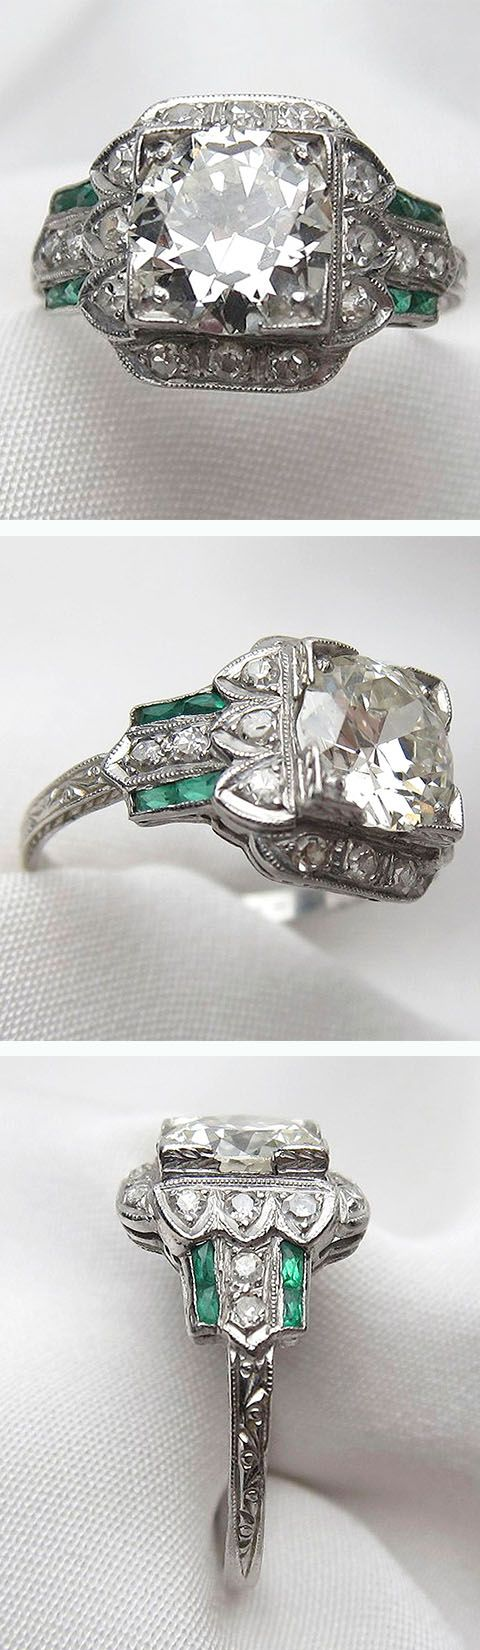 Your dream vintage engagement ring. Curating vintage & antique jewelry since 1972, Isadoras.com.